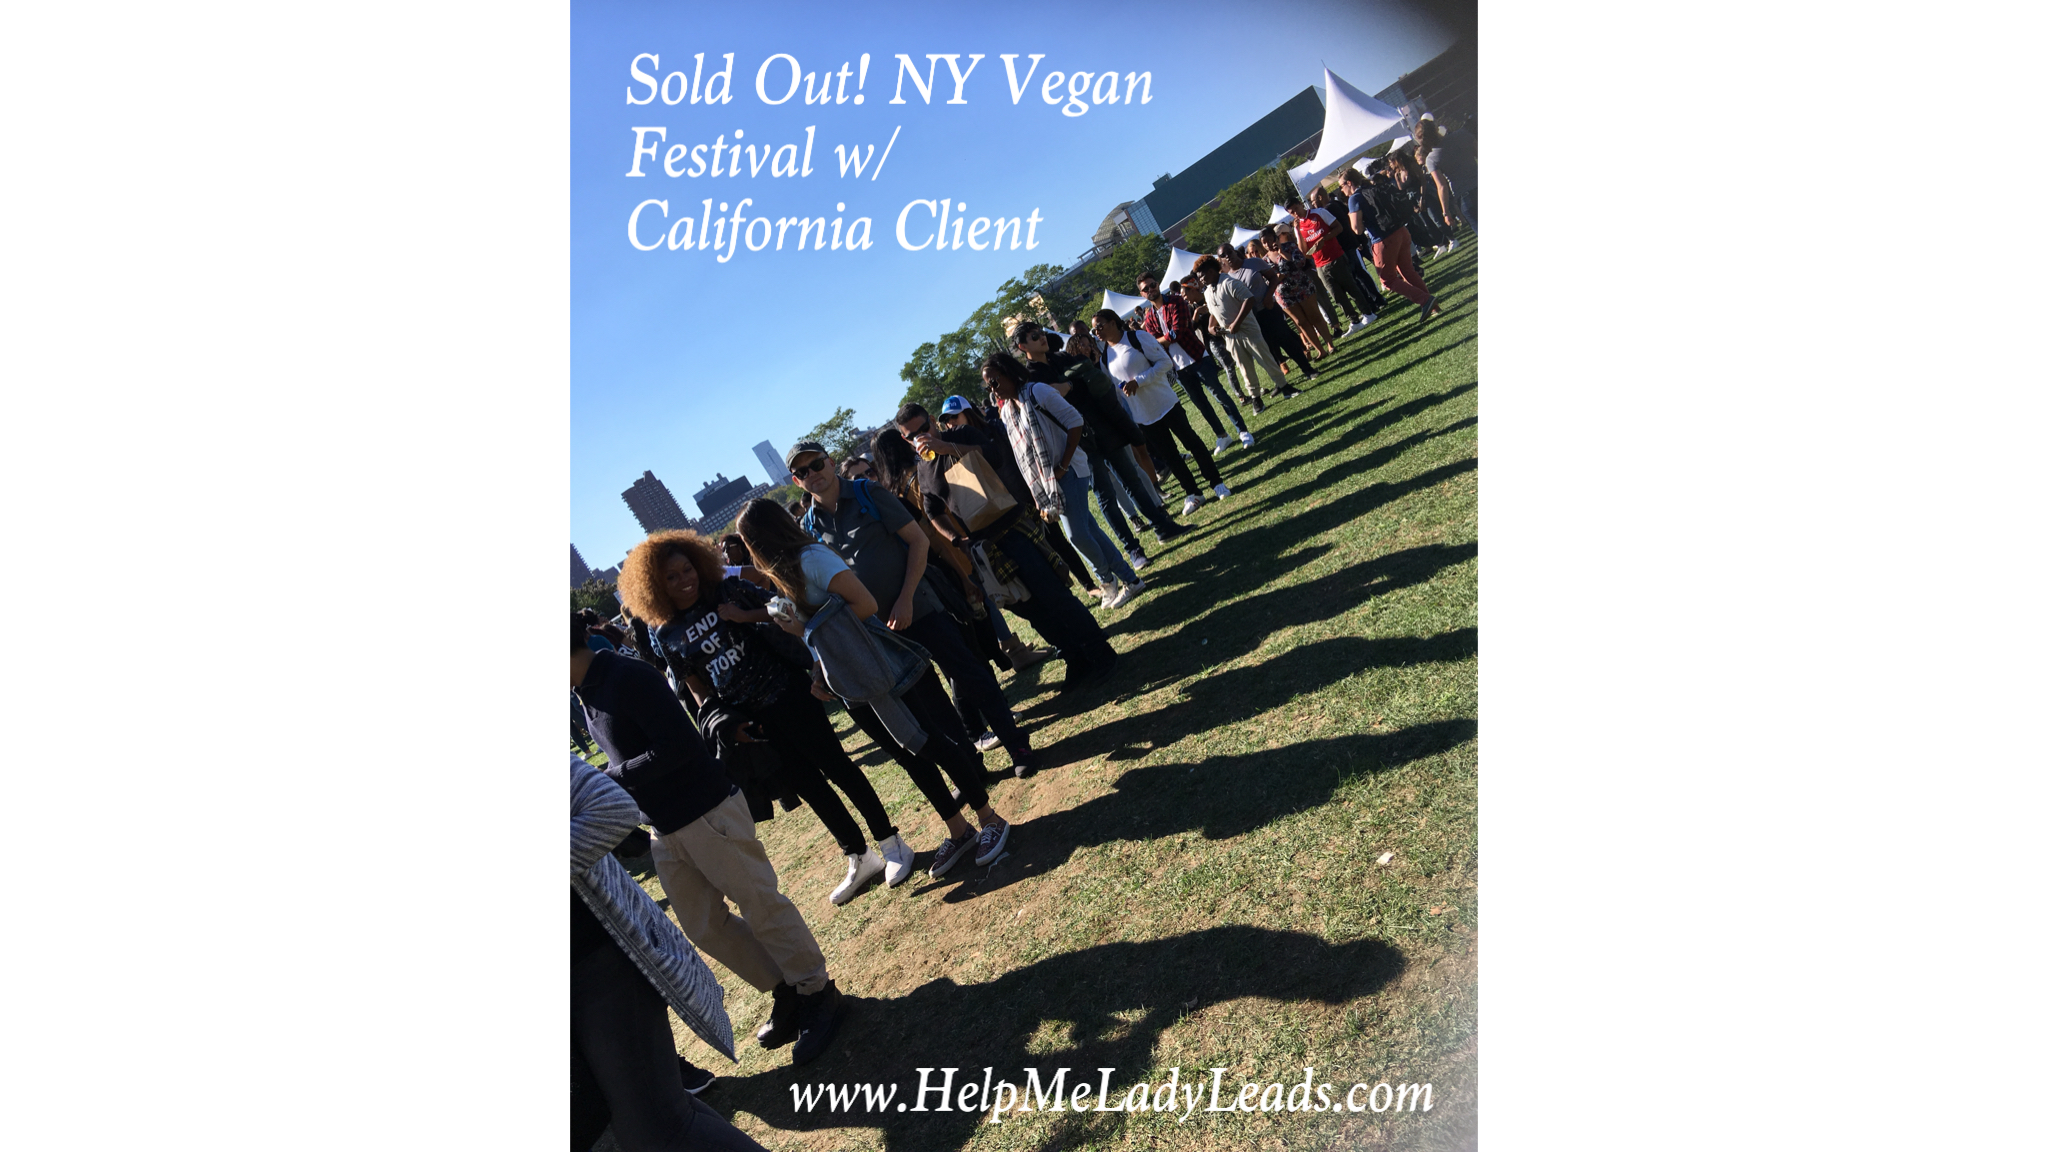 Click here to watch 1 min clip of Veganation from Cali in NYC..SOLD OUT!